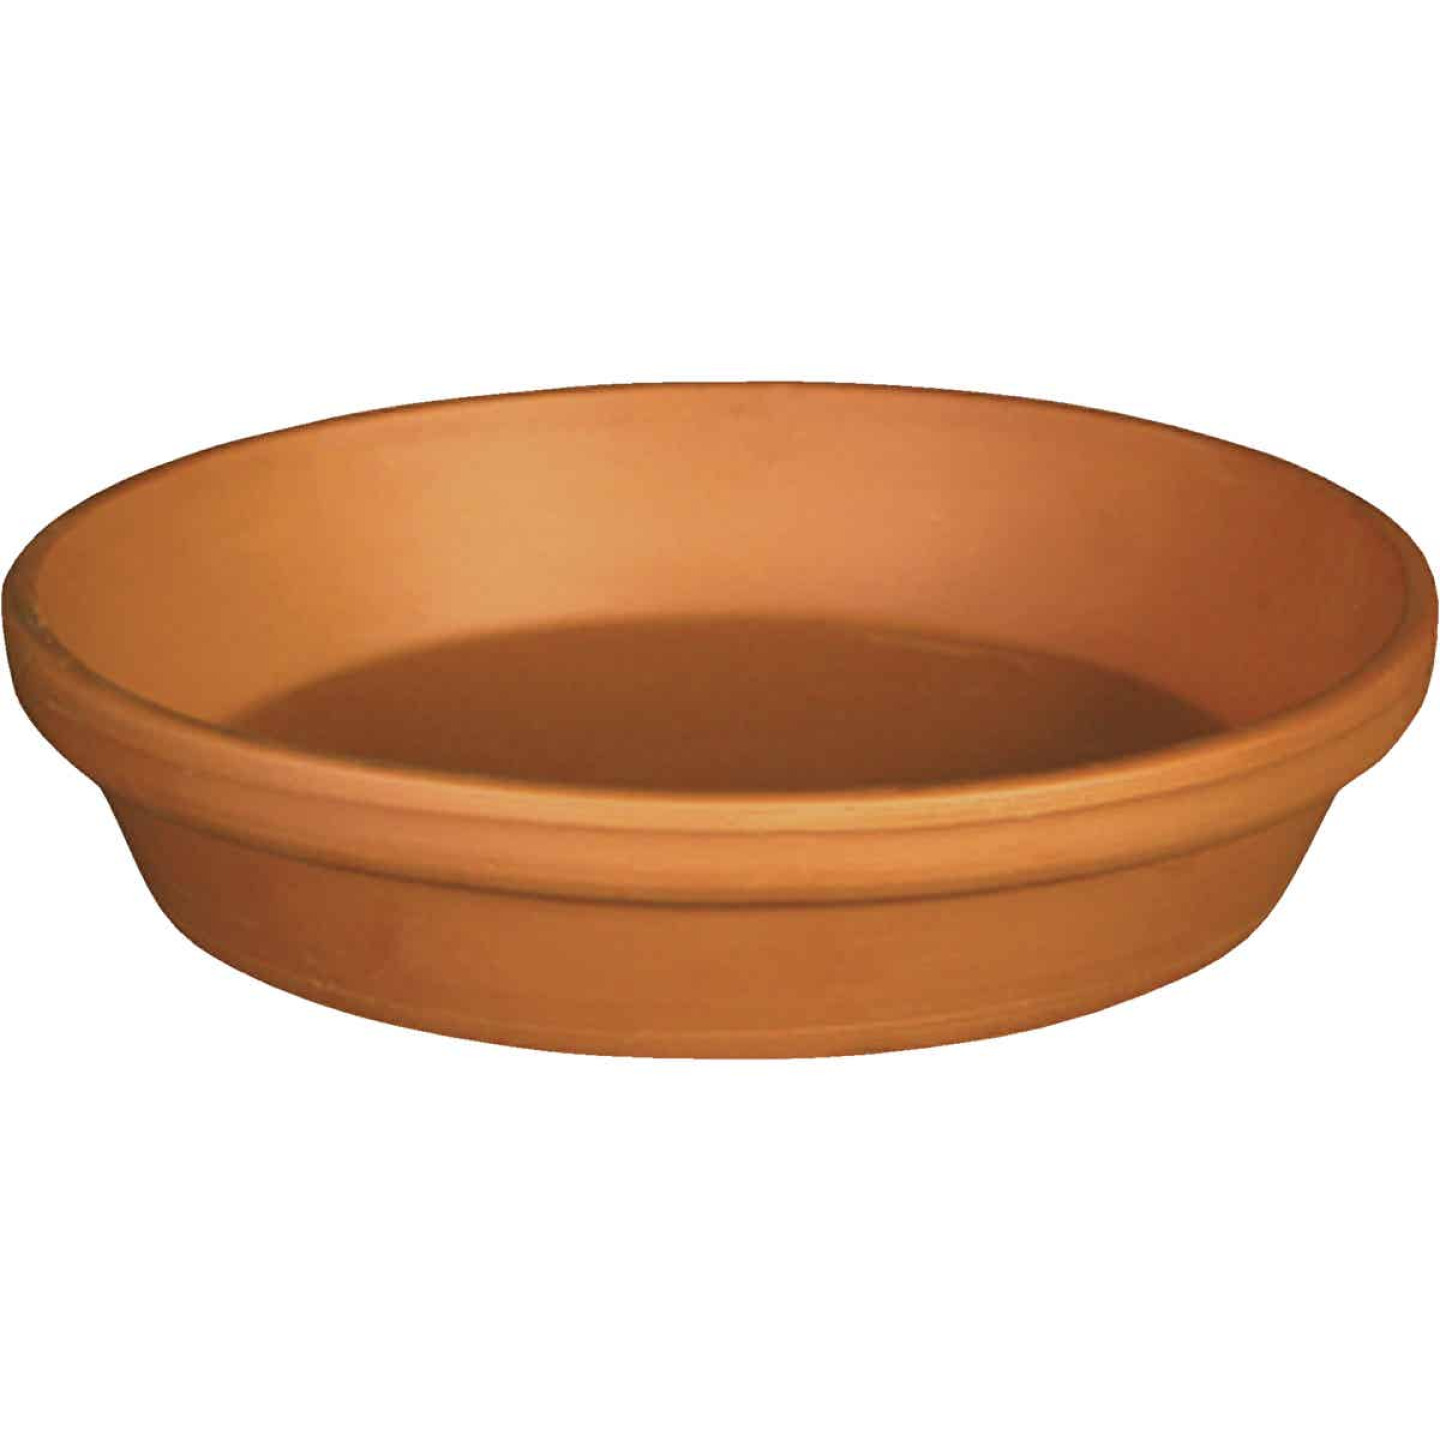 Ceramo 12 In. Terracotta Clay Standard Flower Pot Saucer Image 1